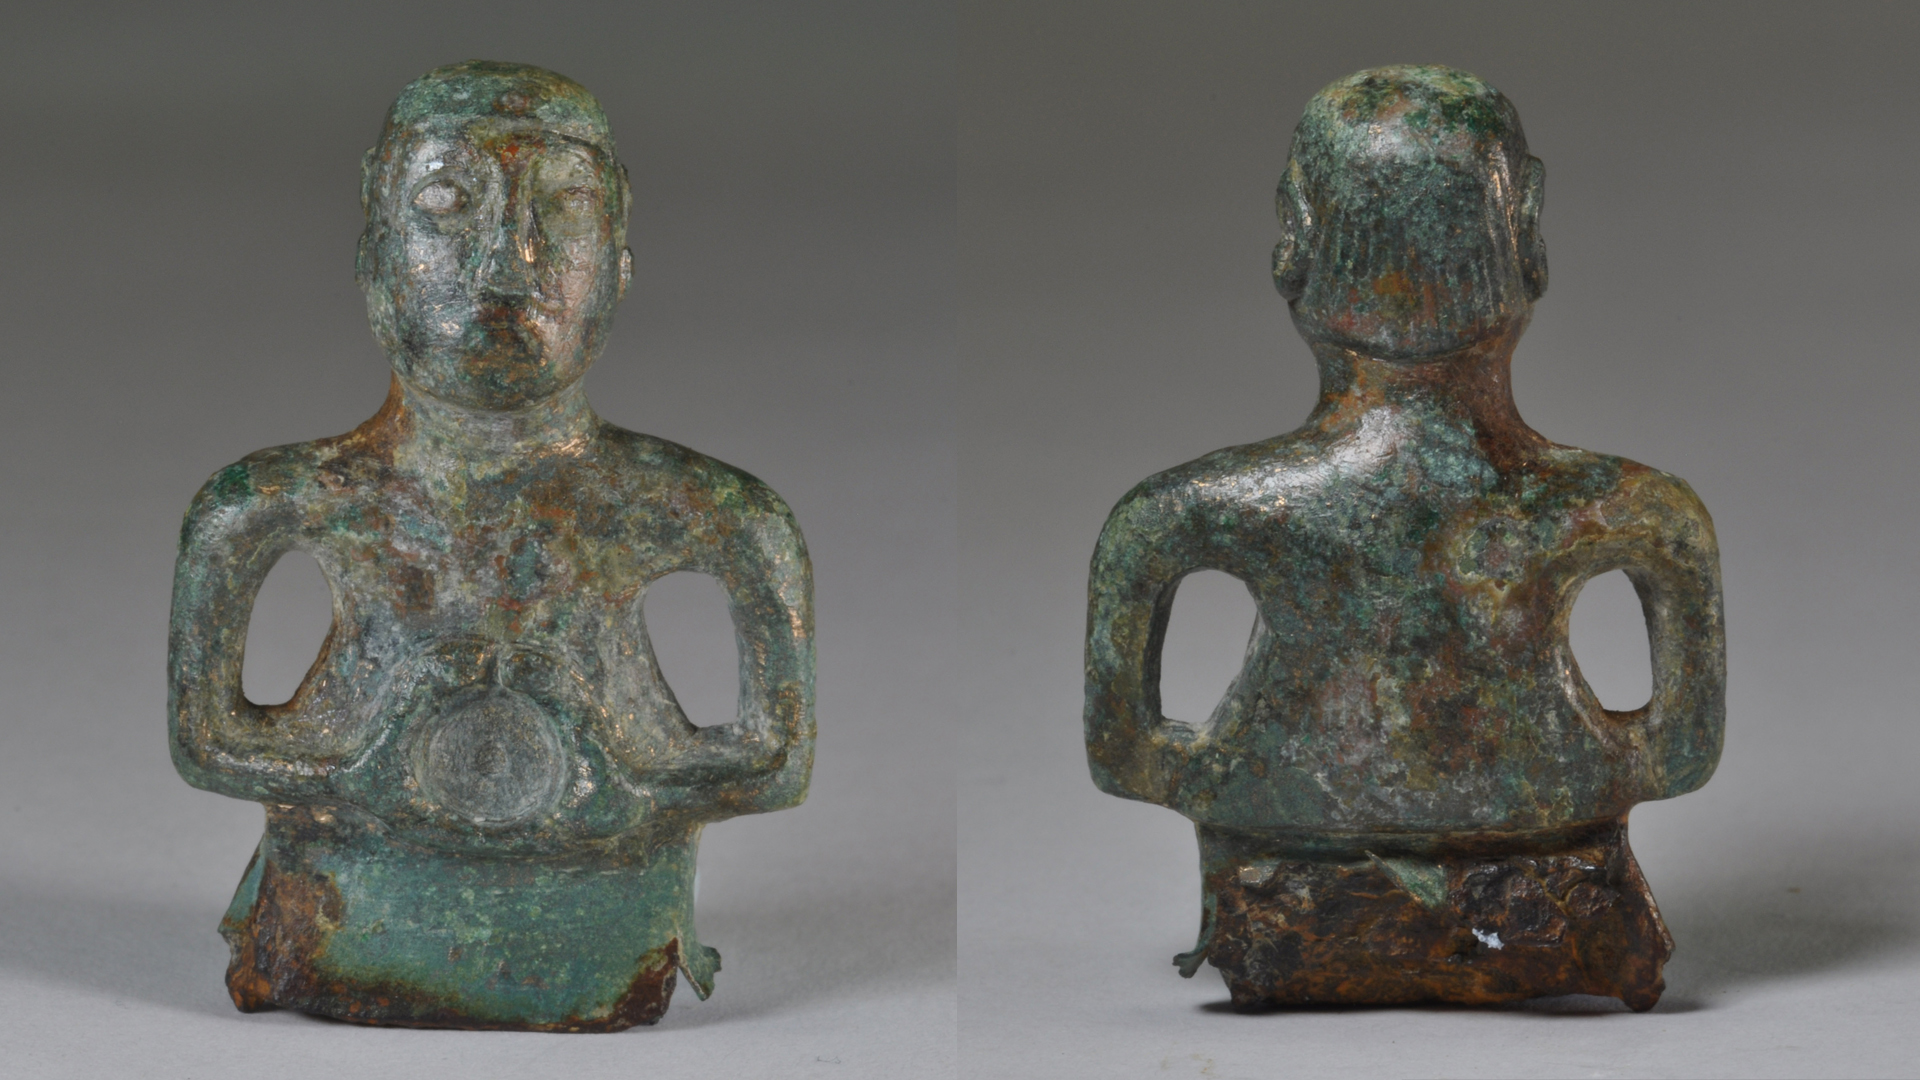 Celtic god or 1980s hockey player? Ancient deity statue wears a mullet and mustache